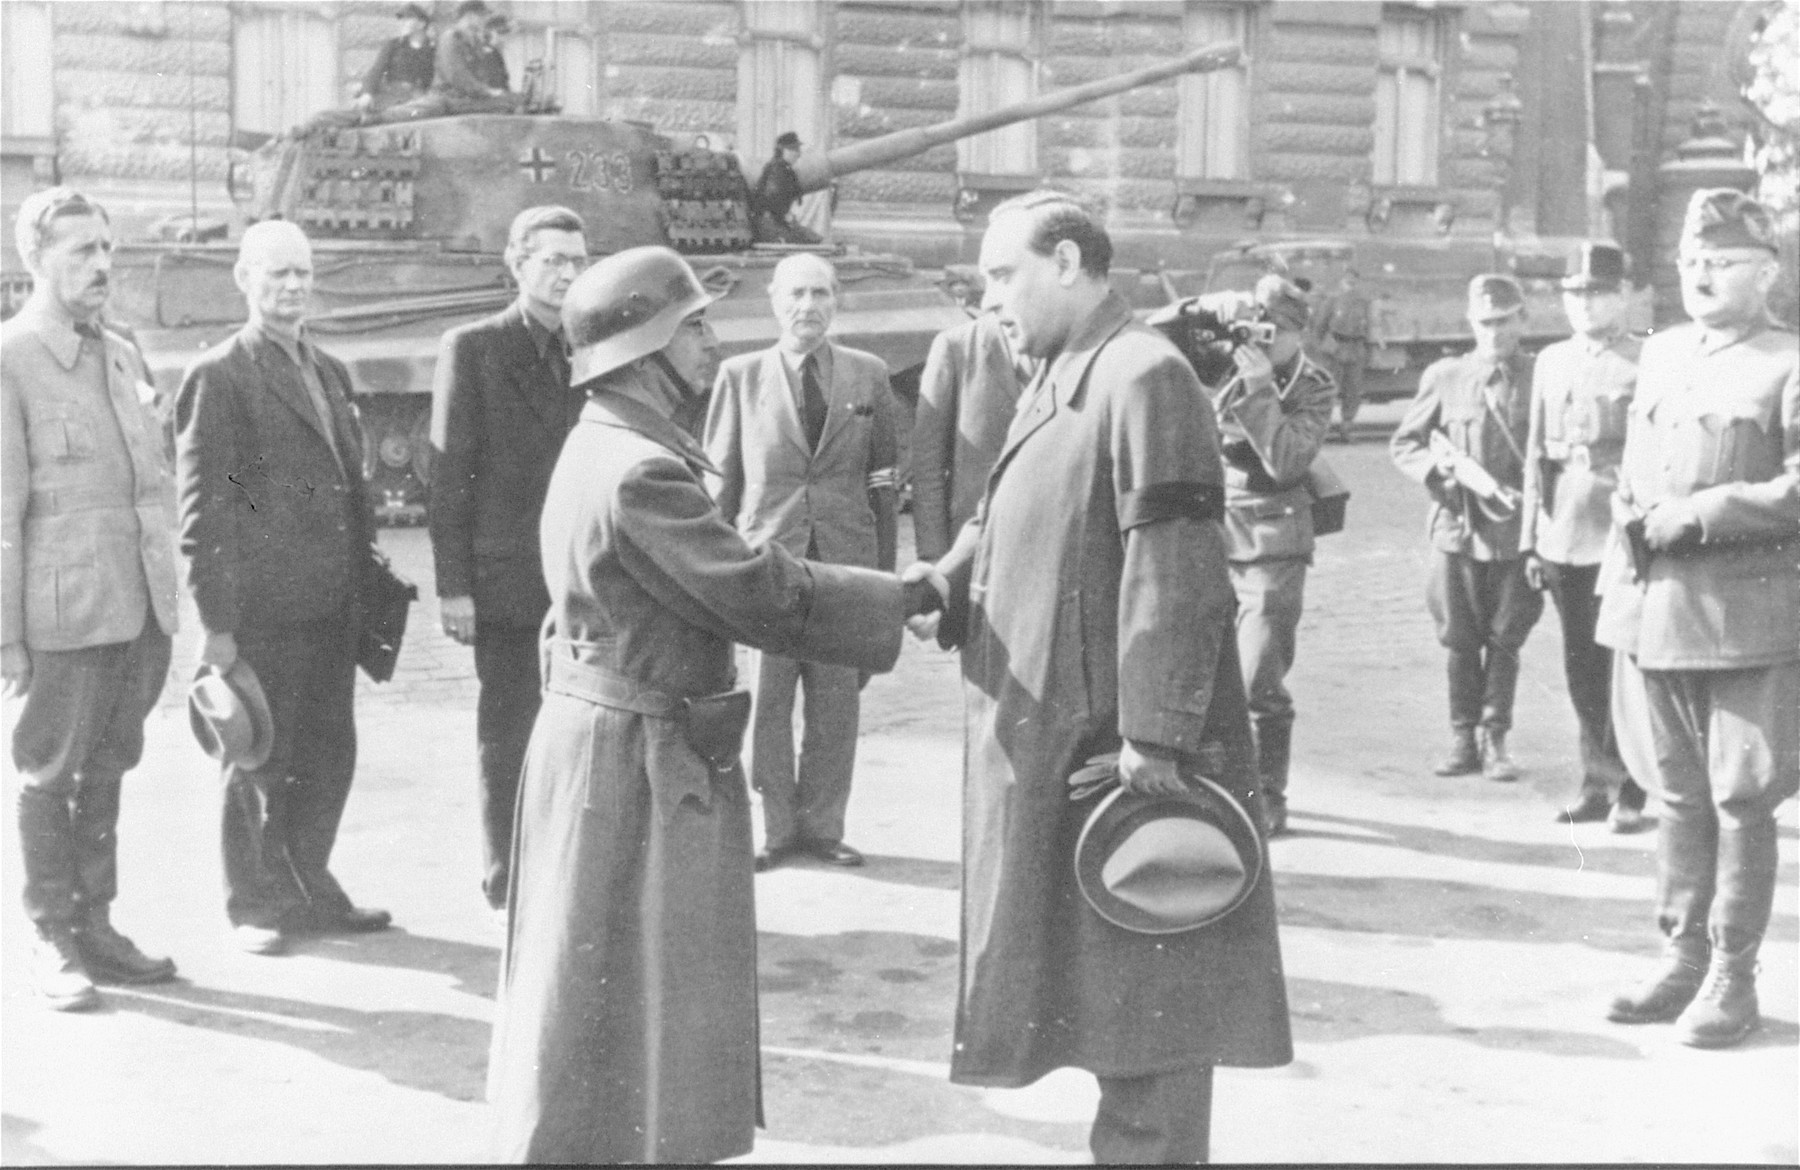 The new premier of Hungary, Arrow Cross party leader Ferenc Szalasi, greets his troop commander in front of the Ministry of Defense in Budapest.    Pictured behind them (from left to right) are Jeno Szollosi (Deputy Prime Minister); Emil Kovarcz (minister in charge of mobilization and war readiness); Ferenc Kassai Schallmayer (Minister of Propaganda and National Defense), Gabor Vajna (Minister of the Interior); a German SS photographer; a member of the Hungarian military police; an Hungarian police official; and Karoly Beregfy (Minister of Defense).   In the background is a German tank.  After Horthy's announcement of peace talks with the Soviets, armed Arrow Cross units, with German assistance, took control of strategic positions within the capital: the offices of Hungarian radio, military bases and checkpoints, and the entire castle district, which includes the residence of the Regent and all government ministries.  During the coup, members of Horthy's bodyguard unit put up resistance, resulting in the introduction of German tanks and heavy artillery into the capital to secure the new government and to put pressure on Horthy to resign.